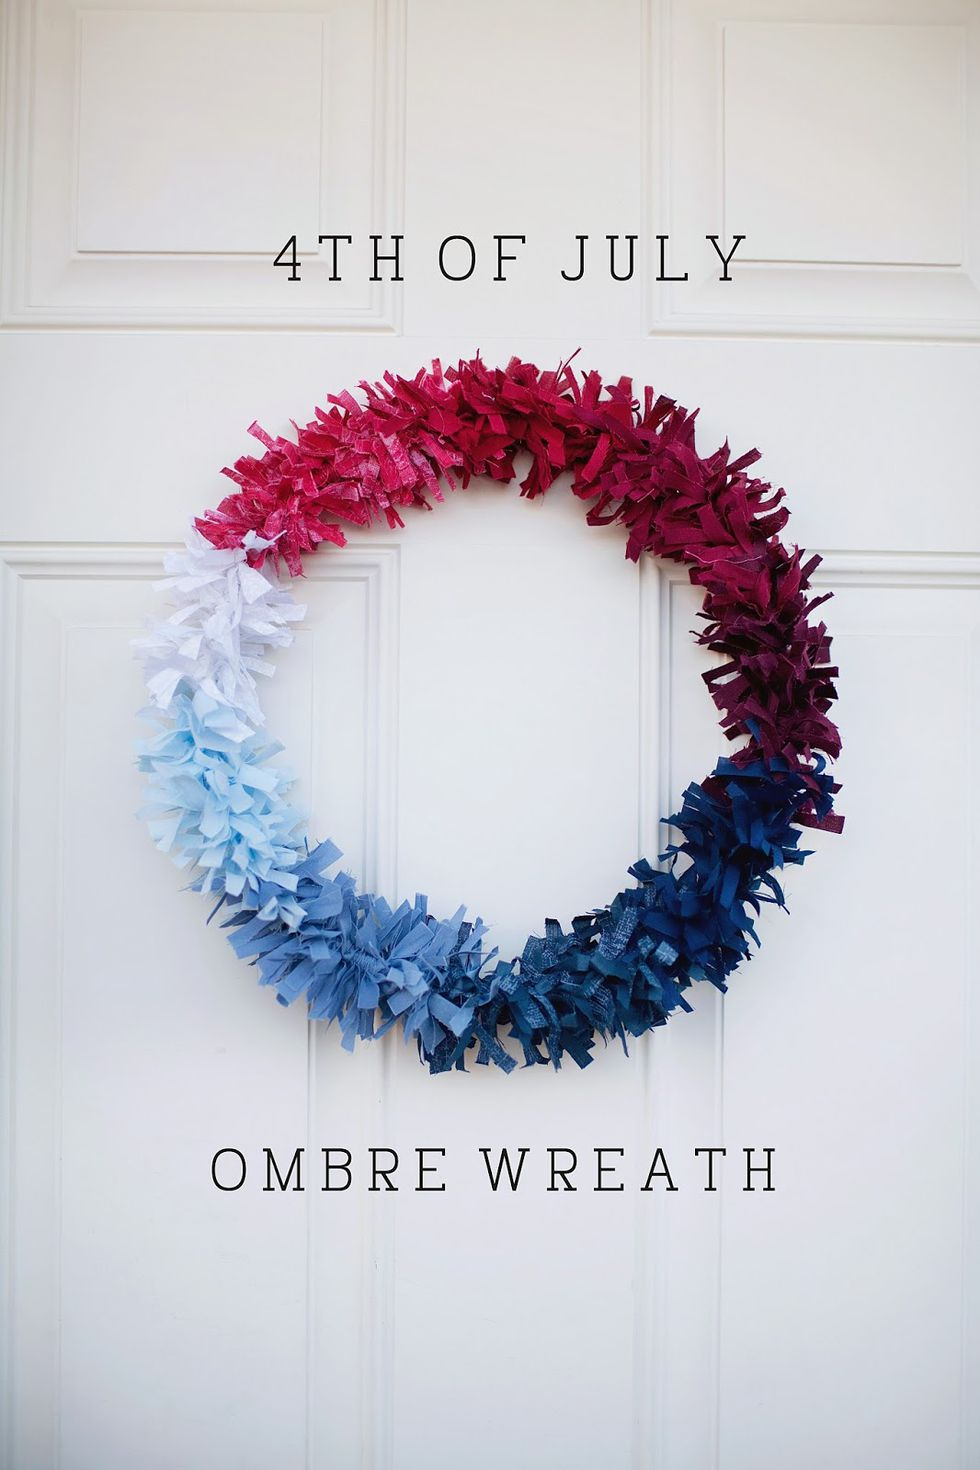 15 Stellar DIY Ideas You Should Craft For The 4th of July